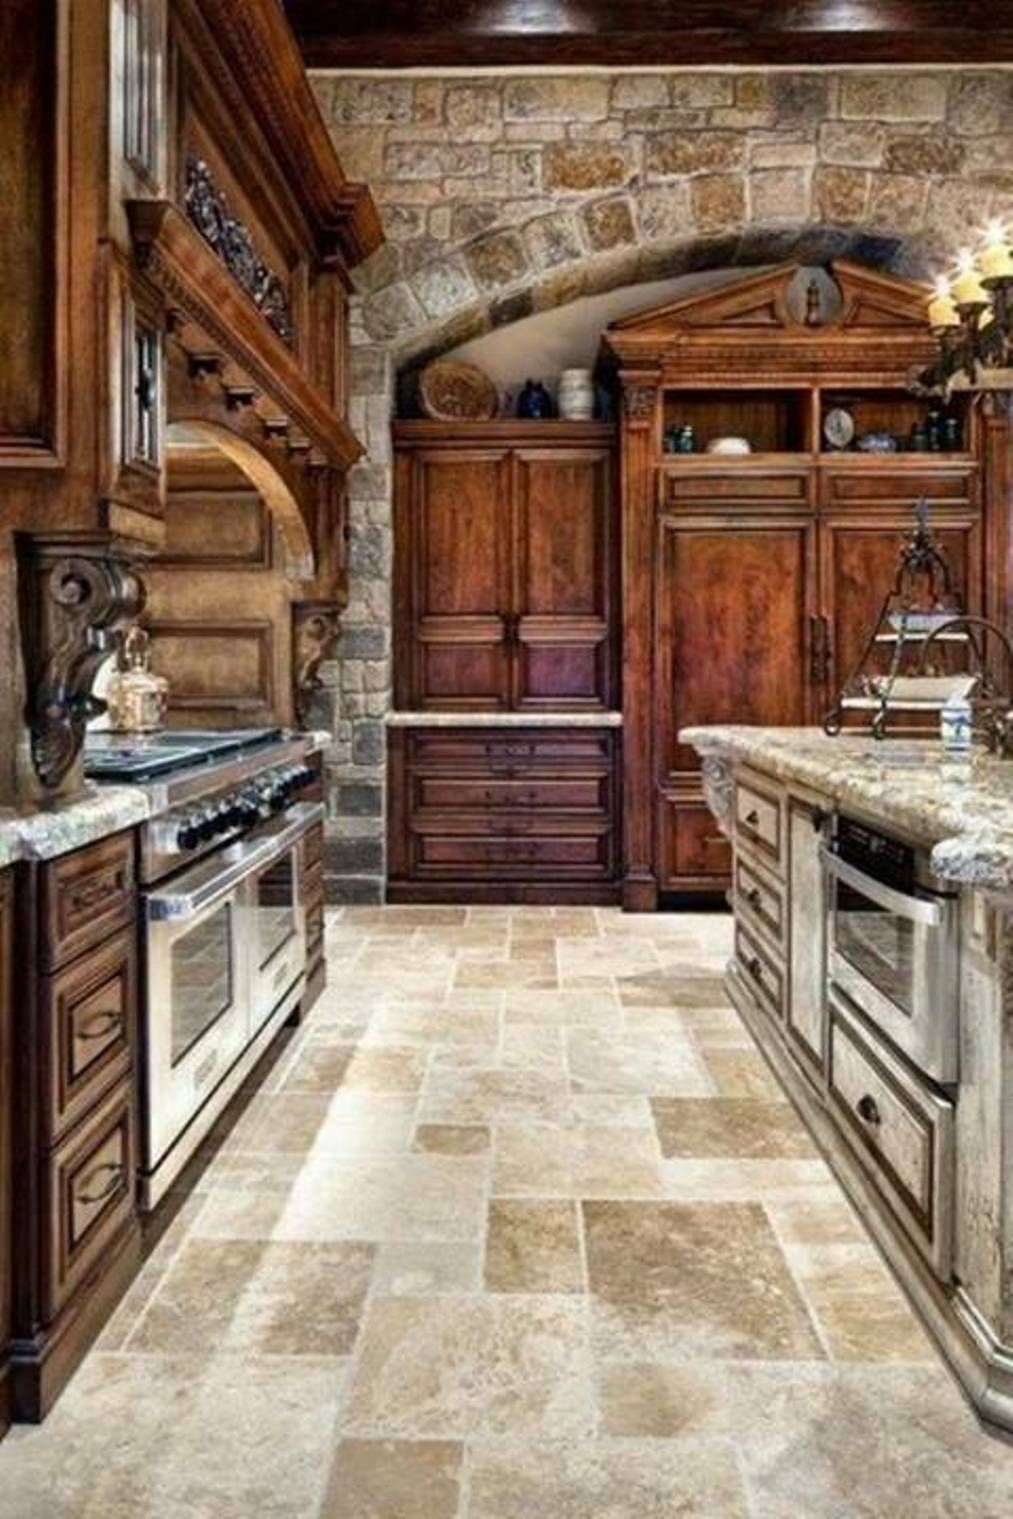 Rustic Kitchen Style Wooden Cabinets Stone Walls Country